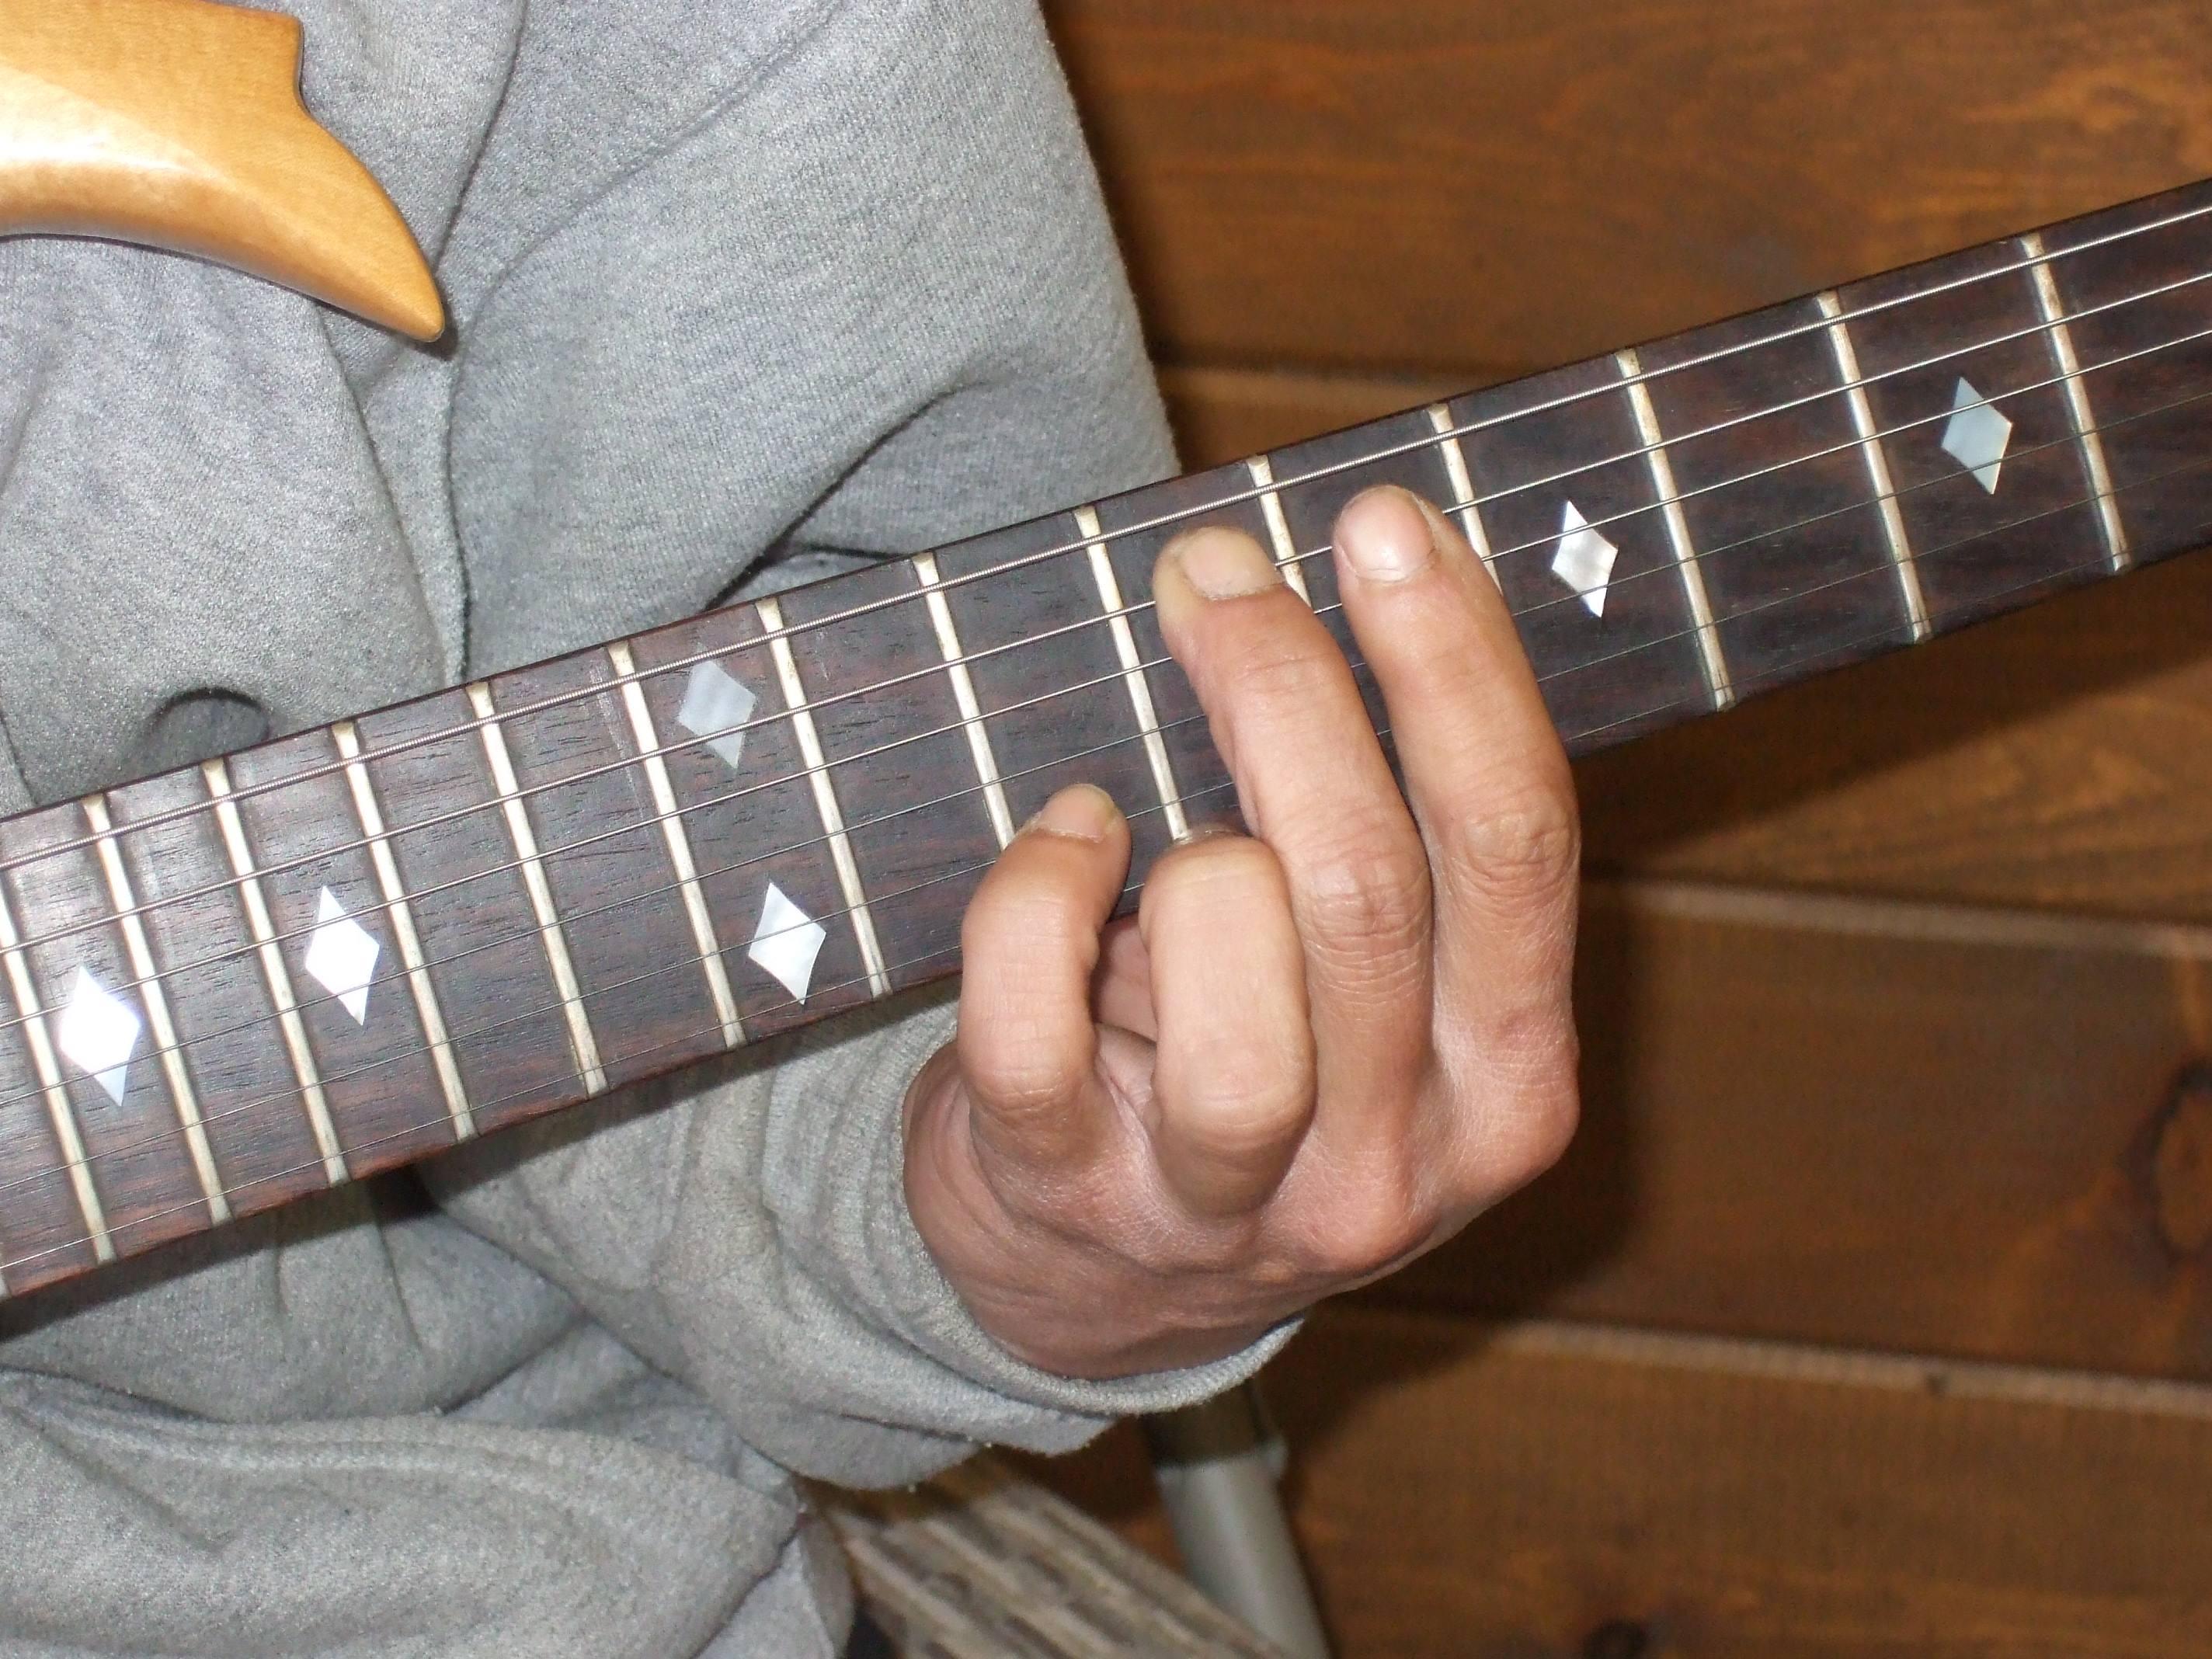 B9 Chord Guitar Image Collections Basic Guitar Chords Finger Placement